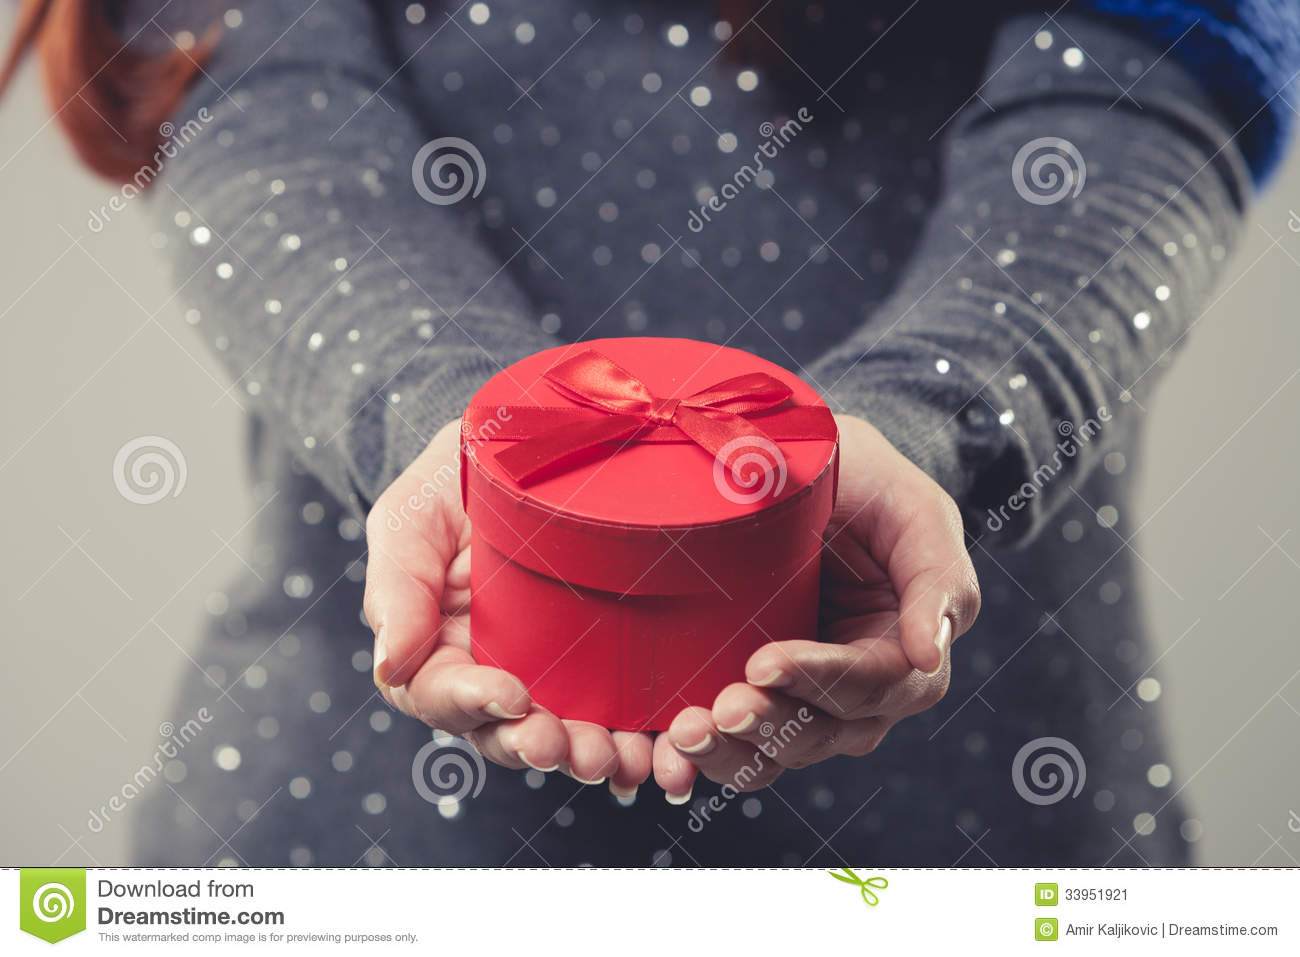 Red festive christmas gift box cradled in the cupped hands of a woman